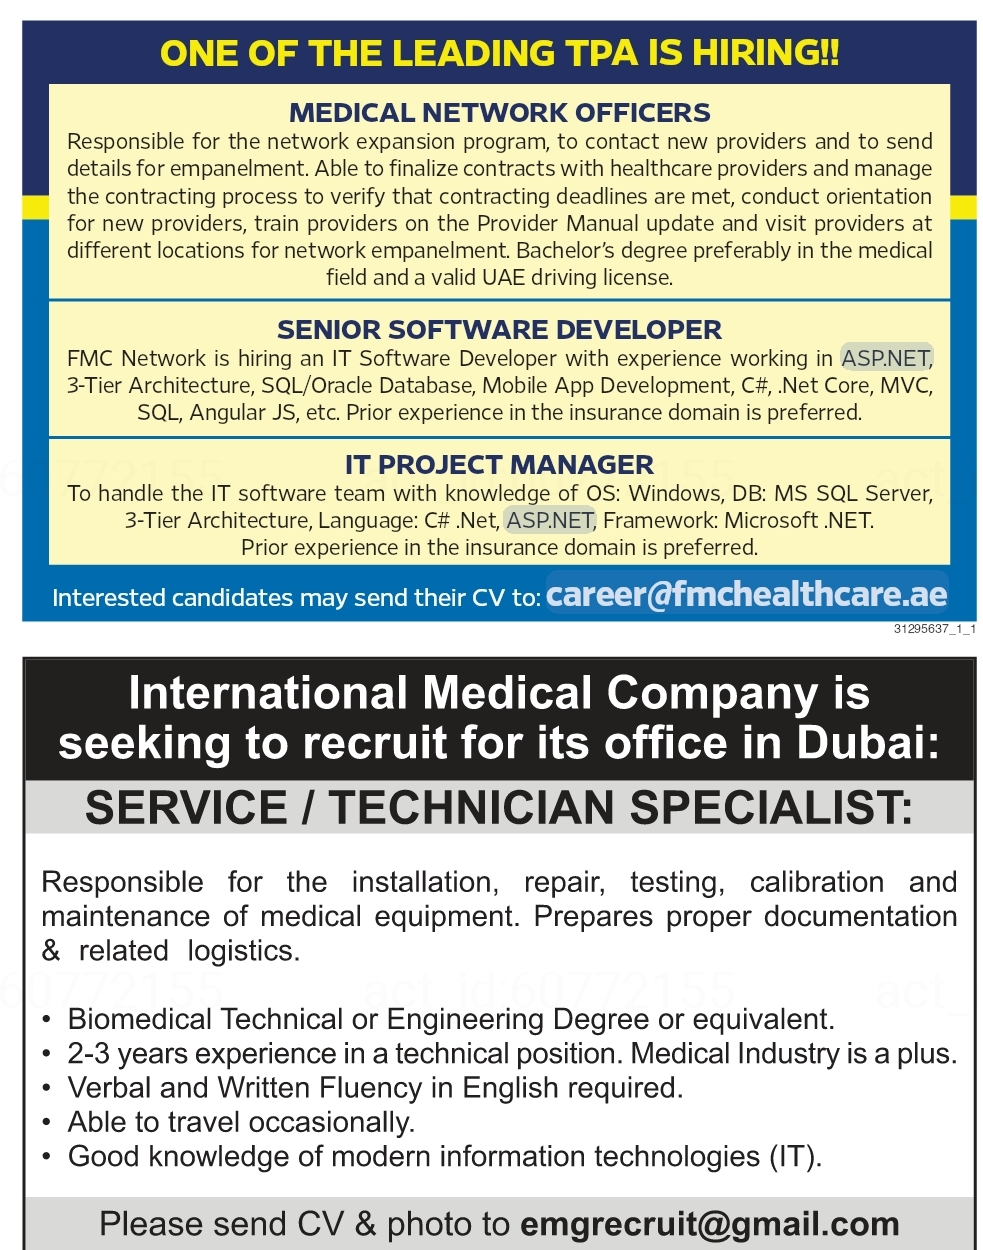 One of The Leading TPA is Hiring for UAE Local Hiring JOBS